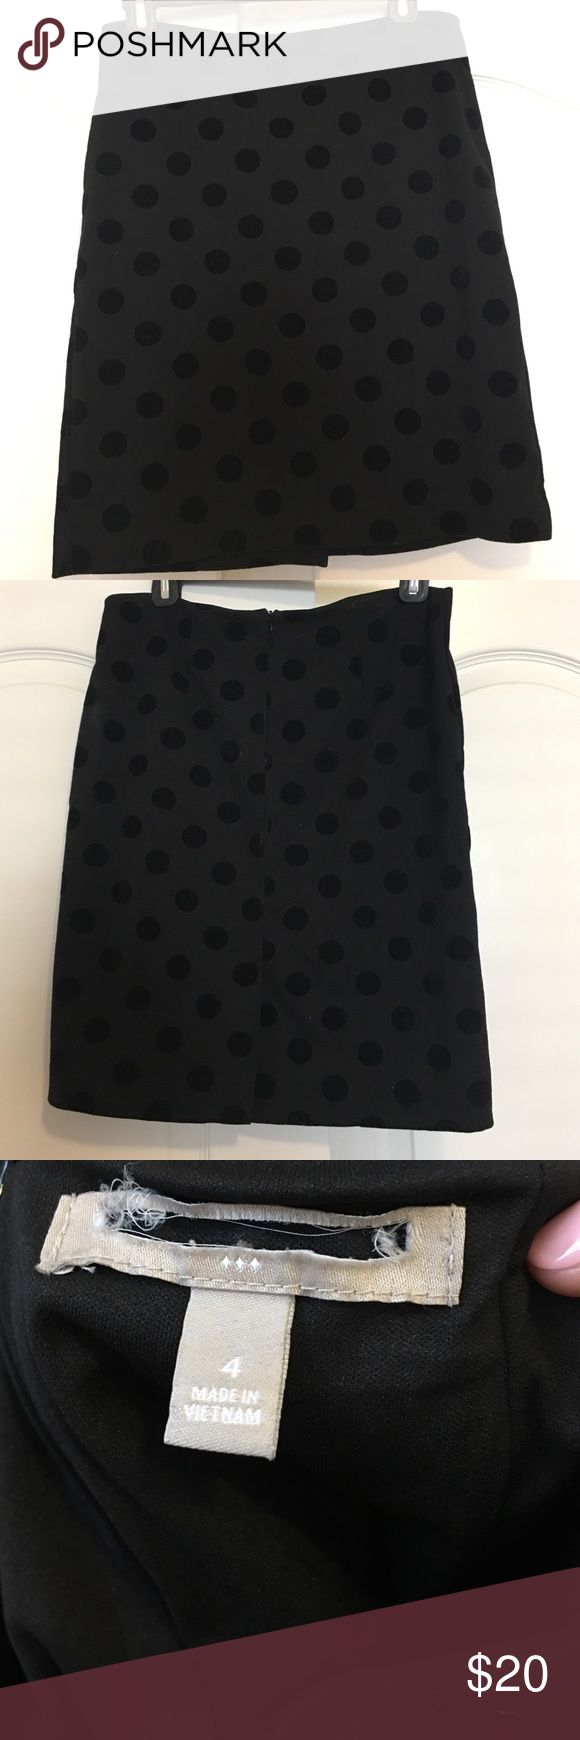 BR velvet polka dot stretch pencil skirt Banana republic skirt purchased from a local boutique that cuts out their tags for resell. Size 4 but is stretch so isn't super tight. Fits right above the knee. Super cute and in great condition! Banana Republic Skirts Pencil